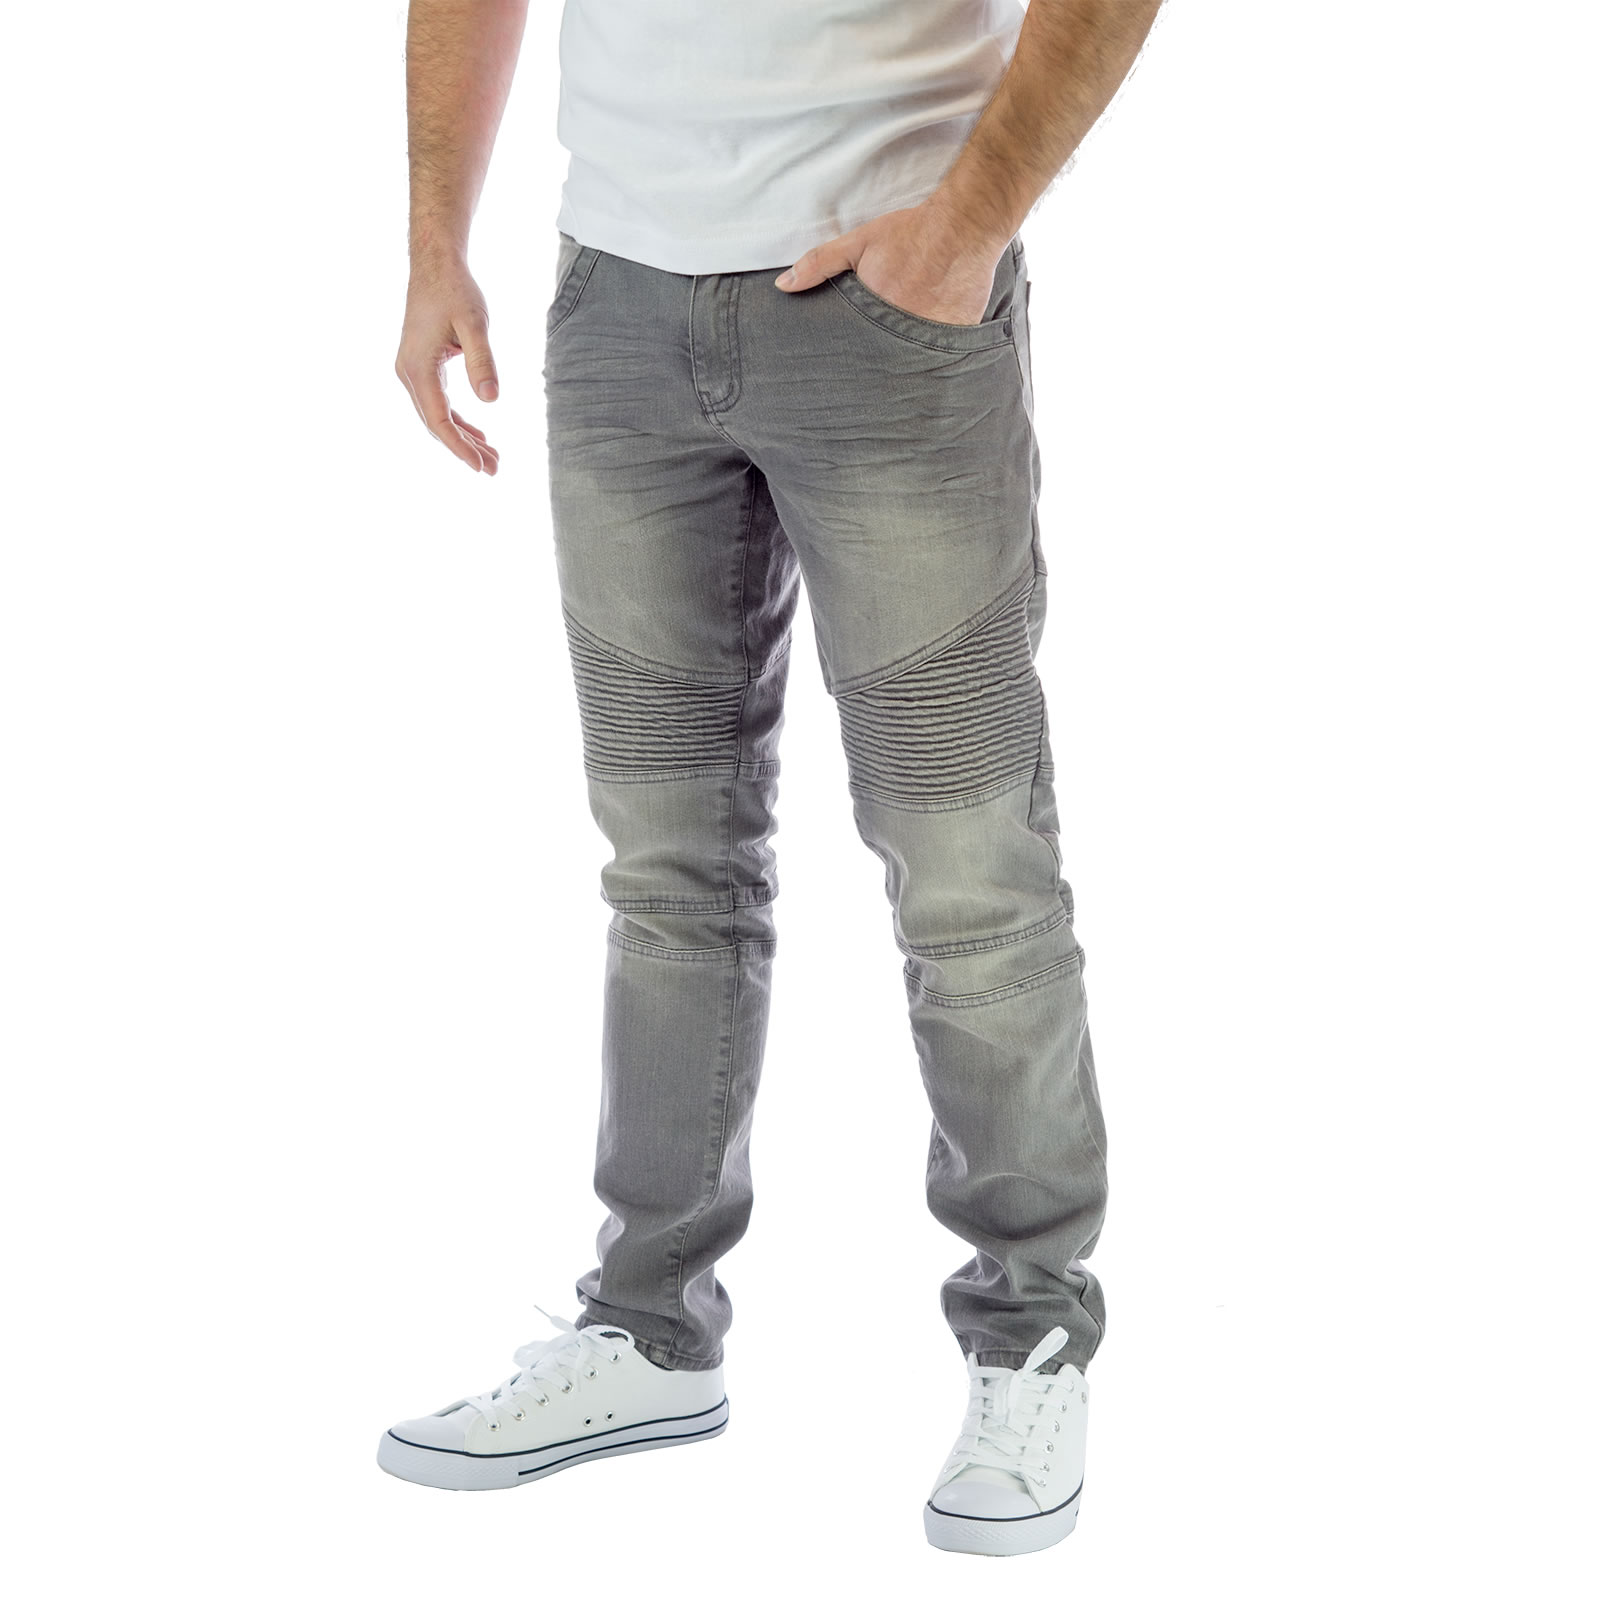 For full-on comfort no matter what your day demands, don these men's Modern Series slim tapered leg jeans from roeprocjfc.gaed to feel natural and give you maximum range of motion, these mid-rise jeans rest slightly below your waist and feature fabric with four-way stretch.